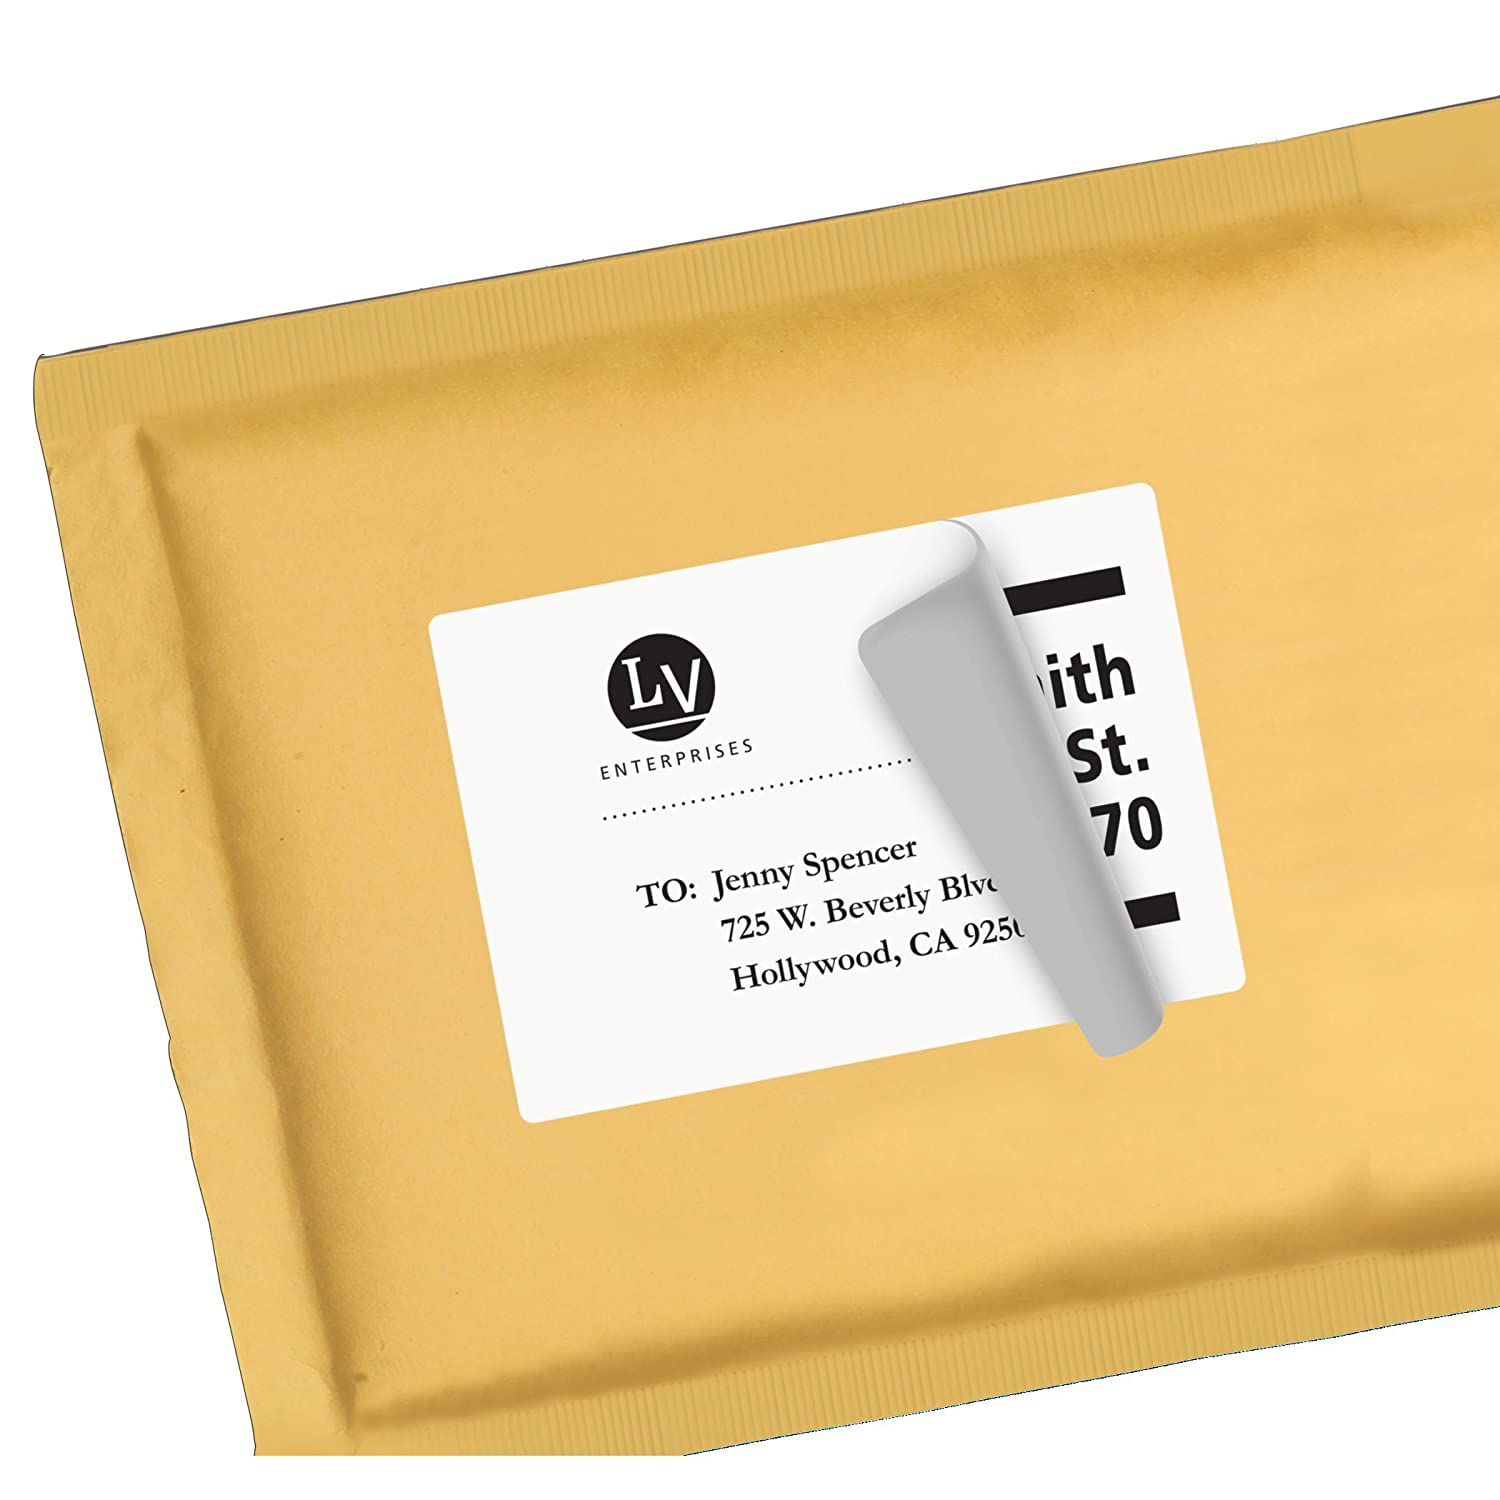 Amazon.com : Avery Shipping Labels with TrueBlock Technology for ...